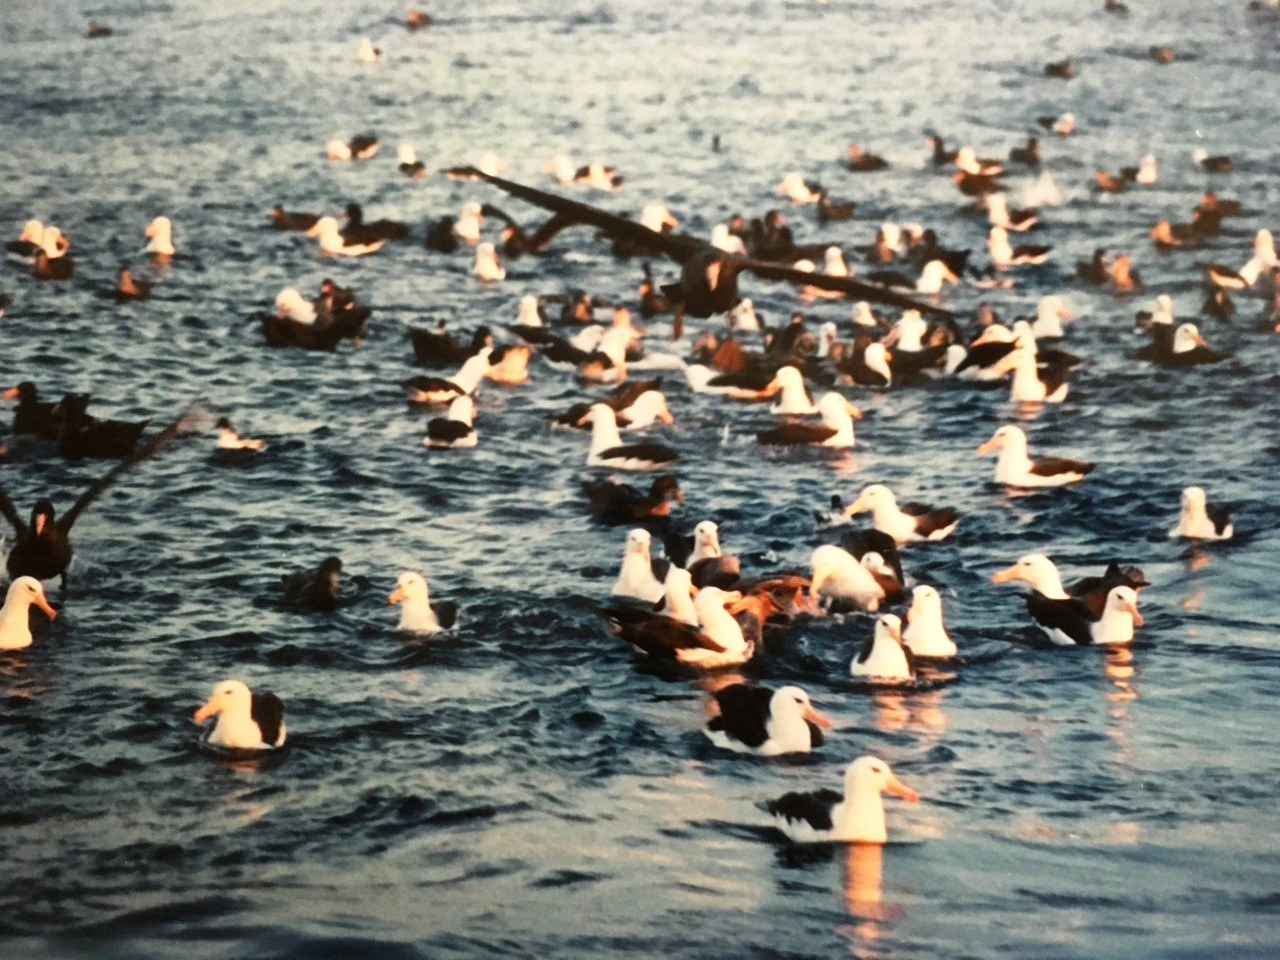 Black browed albatross and giant peterels alongside the Koei Maru 30, 1988